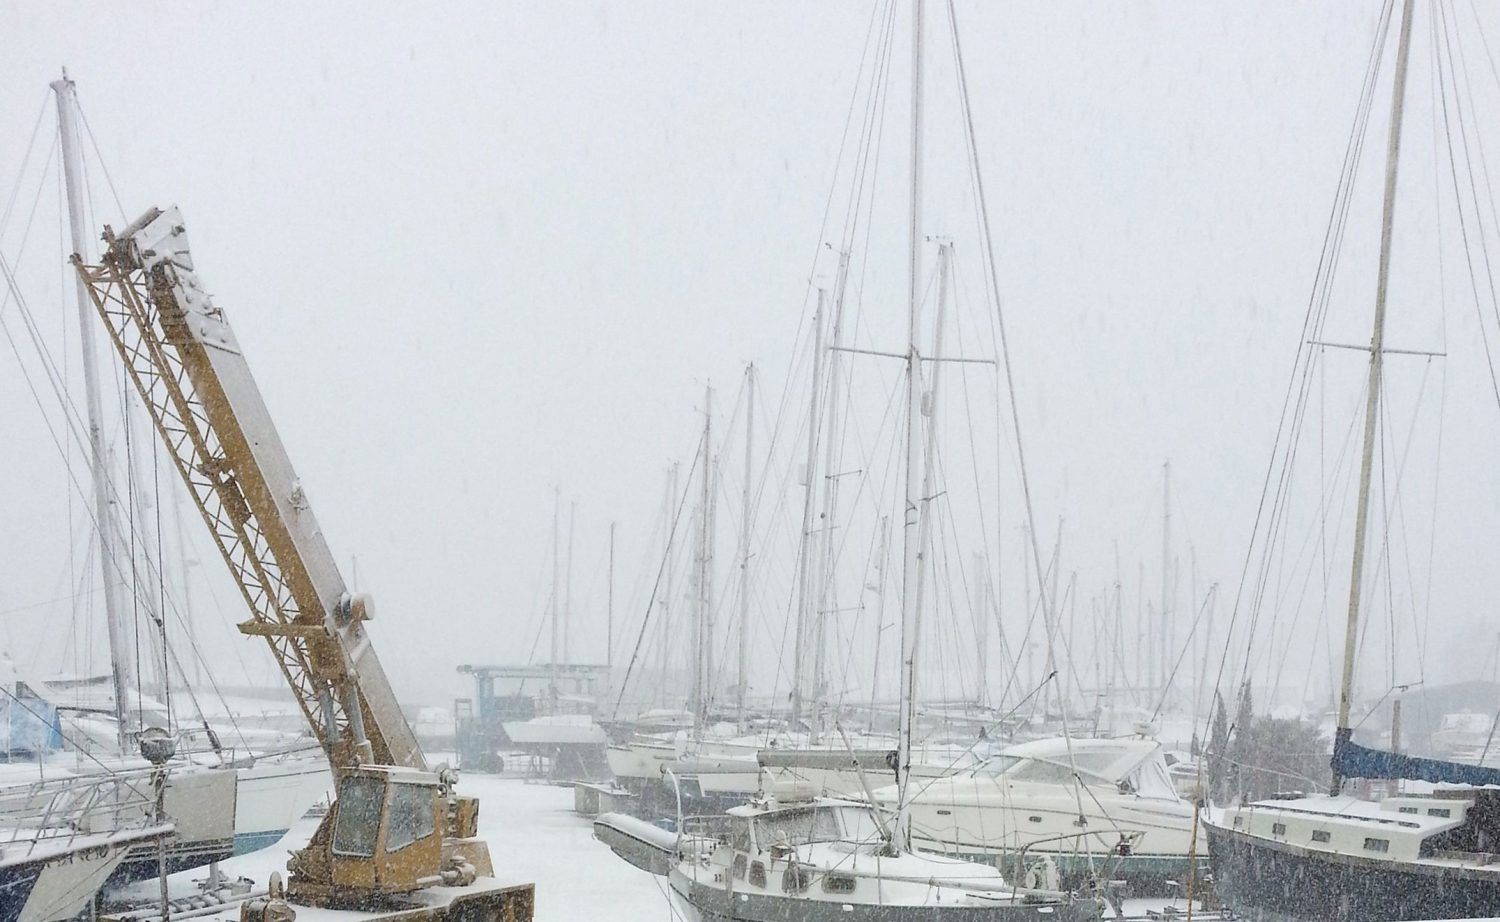 Winterisation at Morgan Marine